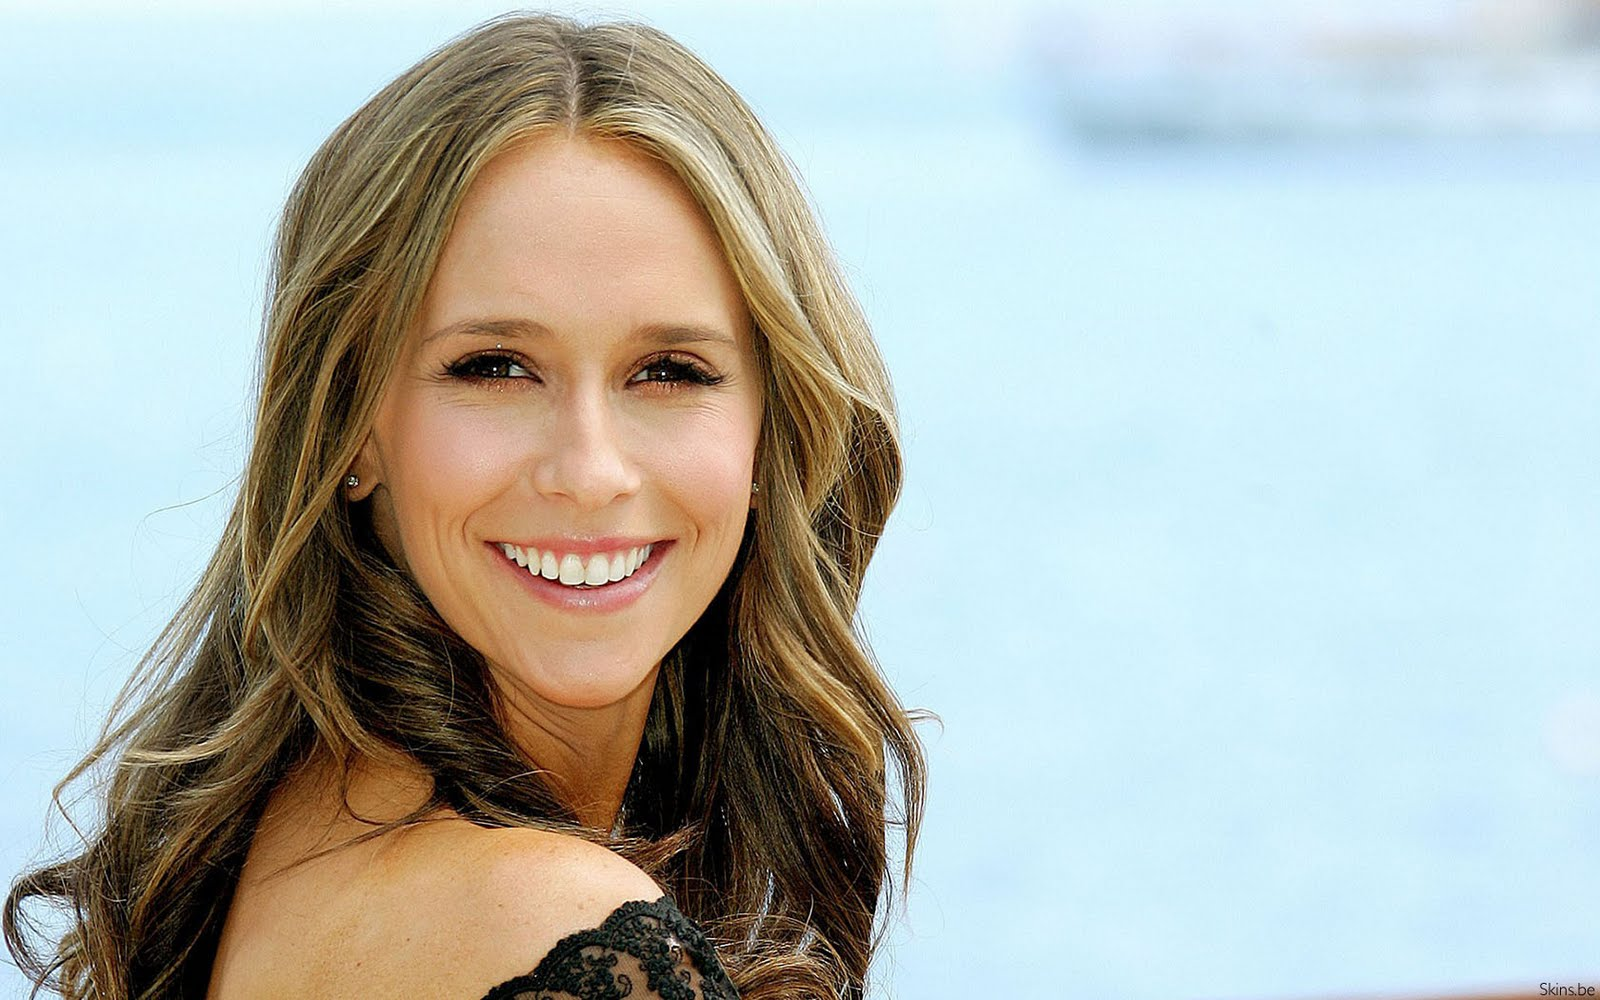 Jennifer Love Hewitt Wallpapers Xtremewalls - jennifer love hewitt wallpapers